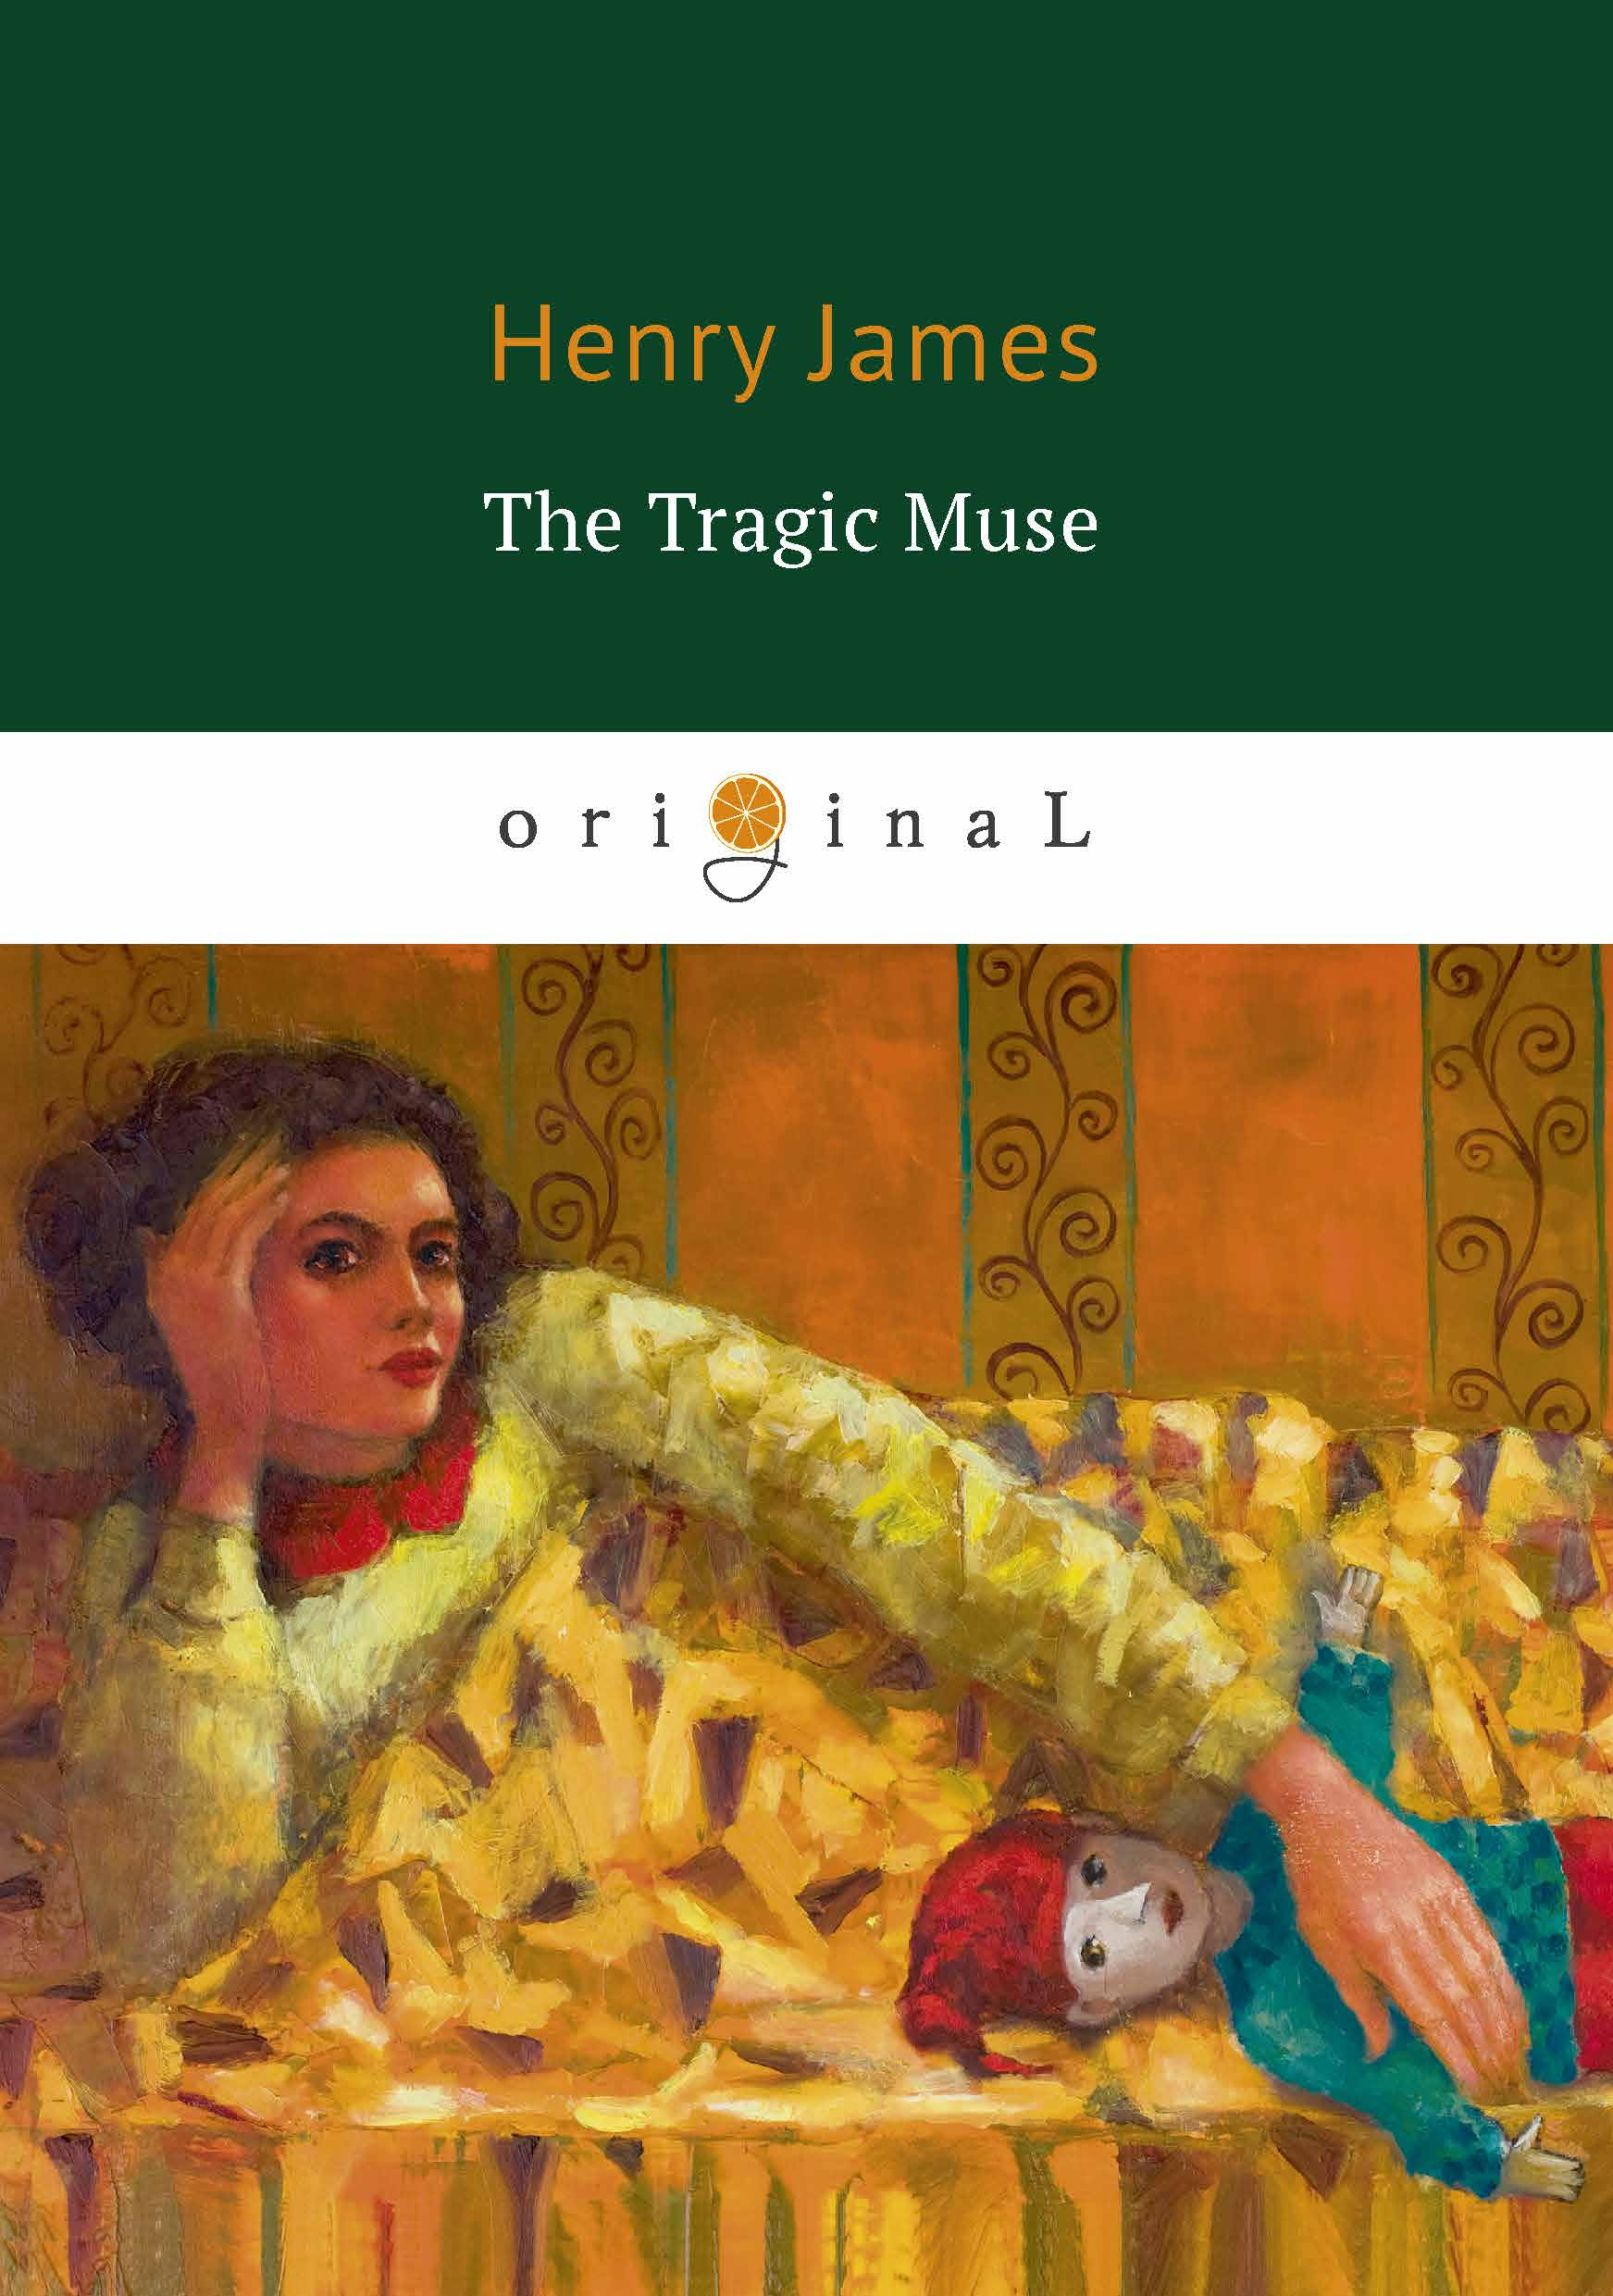 Henry James The Tragic Muse greg zacharias w a companion to henry james